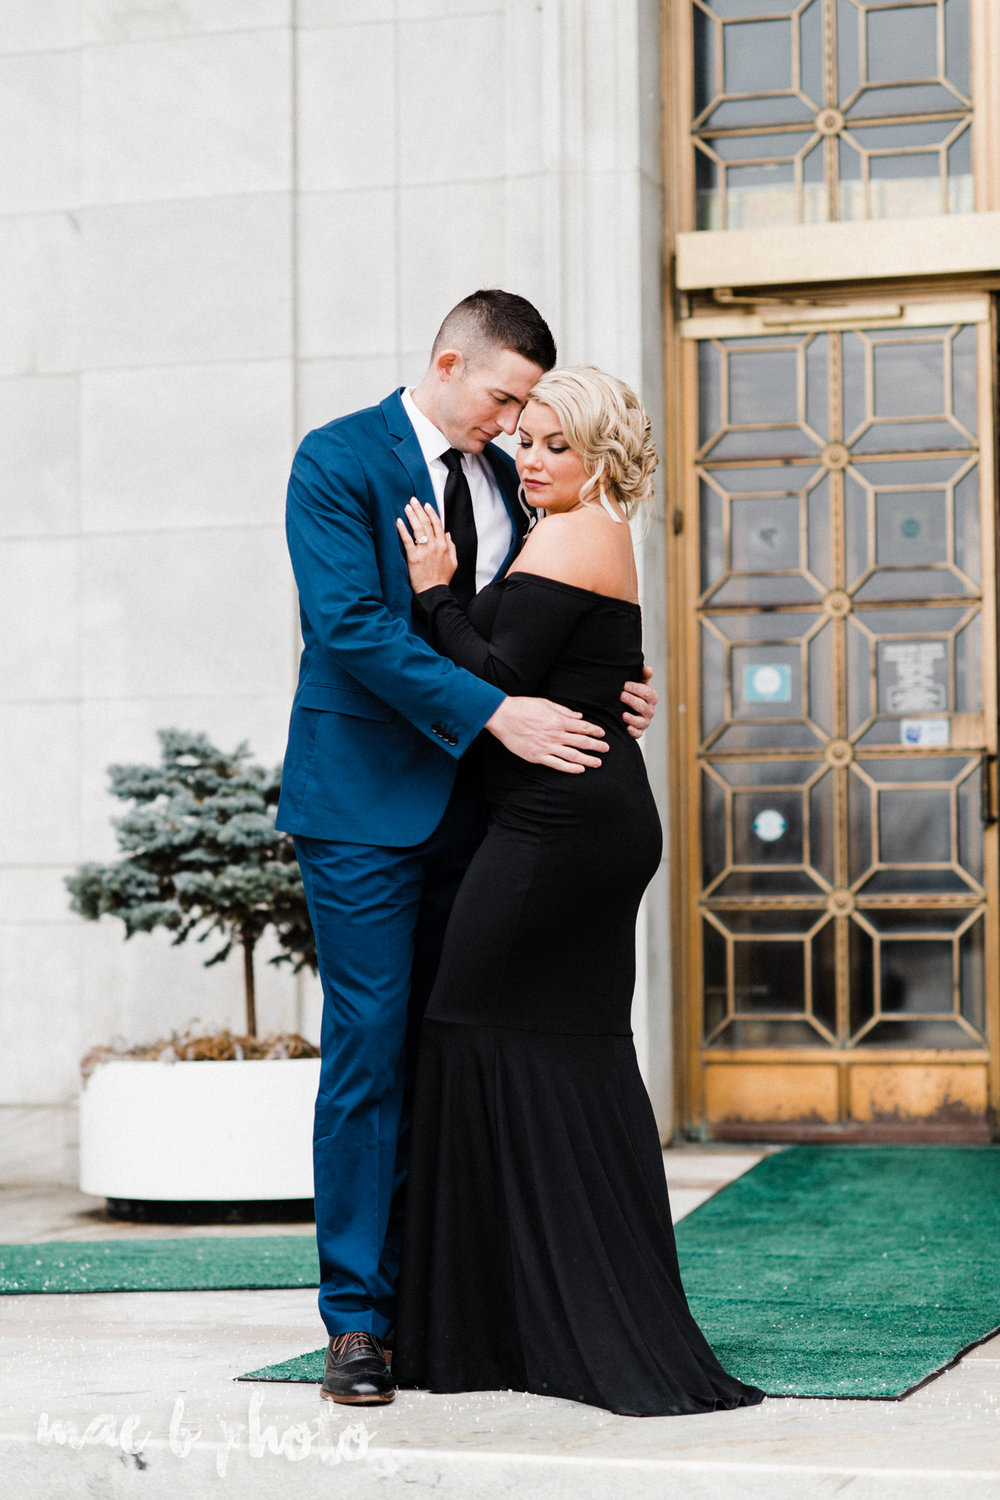 paige and cale's personalized winter glam engagement session at the butler institute of american art and downtown youngstown in youngstown ohio photographed by youngstown wedding photographer mae b photo-7.jpg